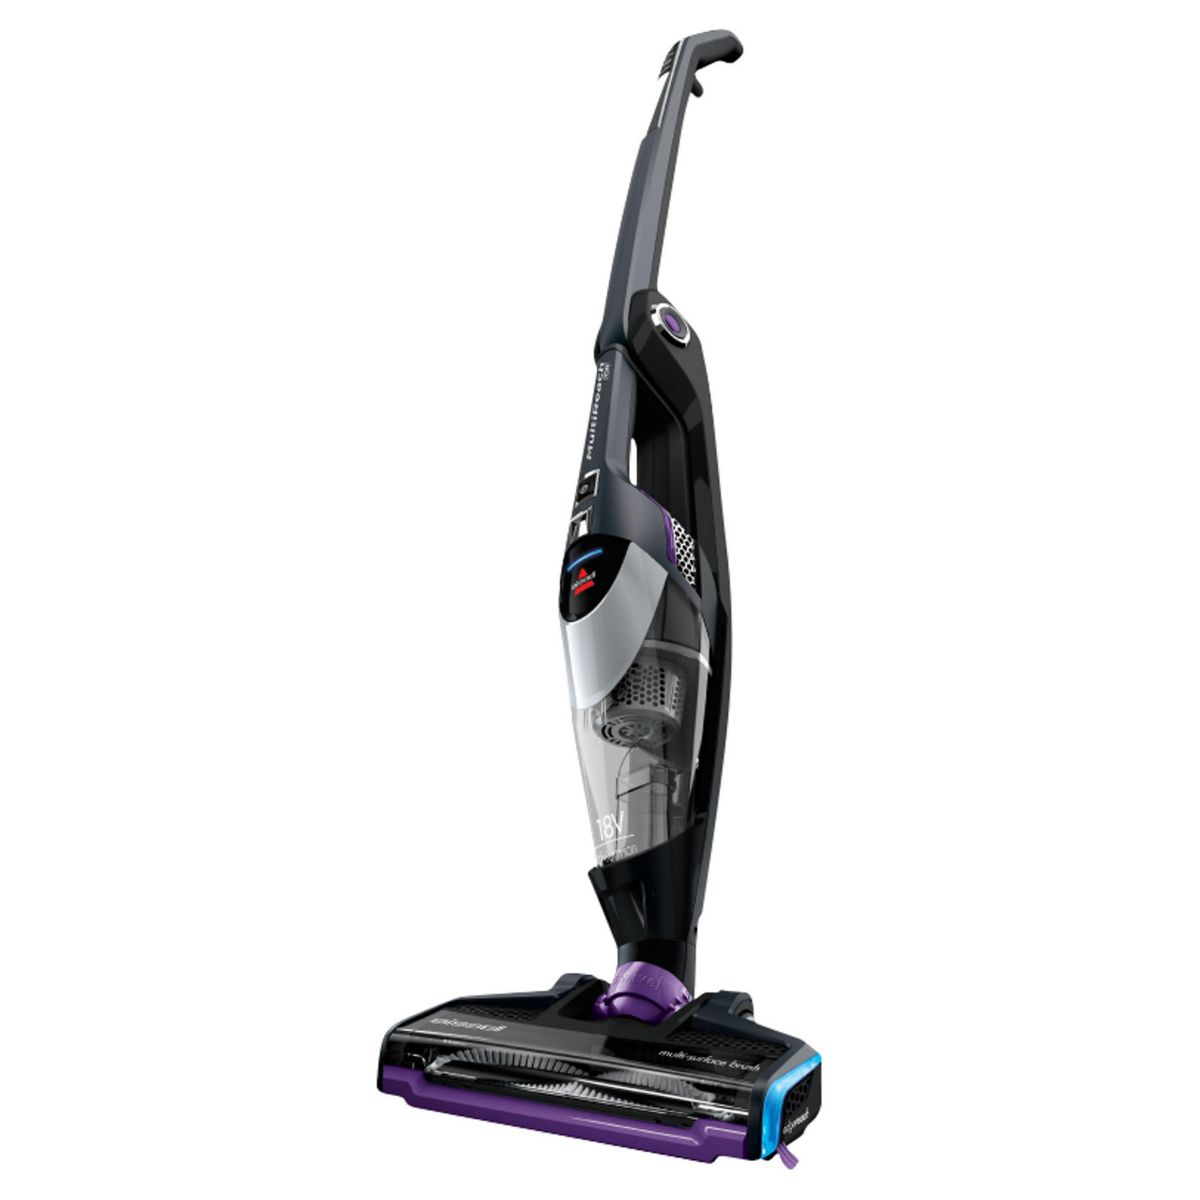 New Vacuums: New Bissell 1312L MultiReach 2 In 1 Cordless Vacuum